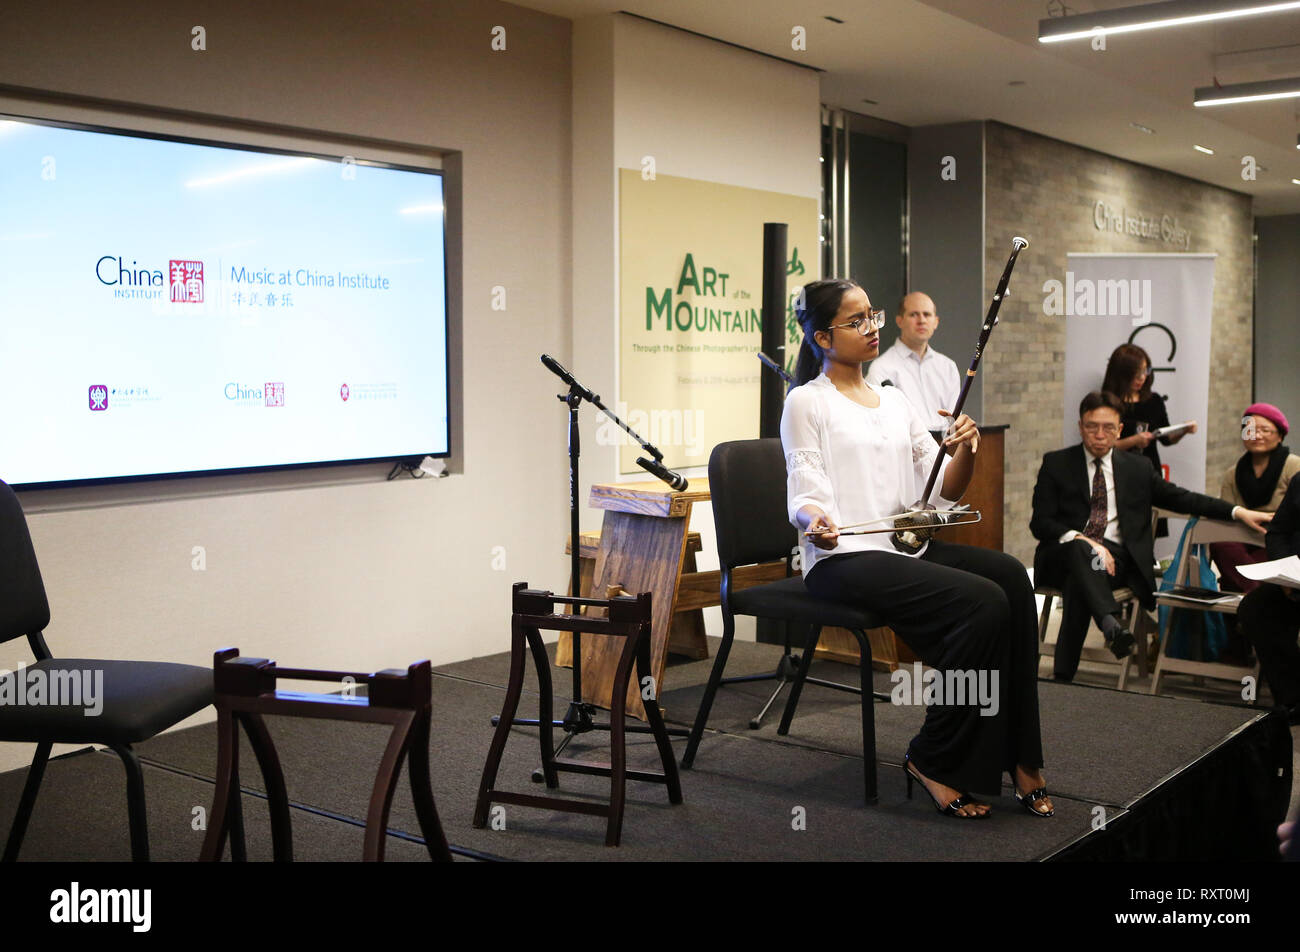 (190311) -- NEW YORK, March 11, 2019 (Xinhua) -- A student performs erhu solo 'Happily Ship Crops' during the launch ceremony of an educational program on traditional Chinese music at the China Institute's headquarters in New York, the United States, on March 10, 2019. The New York City-based China Institute launched a new educational program on traditional Chinese music in partnership with the Bard College Conservatory of Music (BCCM) on Sunday. Starting from spring 2019, the 'Music at China Institute' will offer classes on guqin, erhu, and guzheng, each with eight sessions. Founded in 1926, - Stock Image